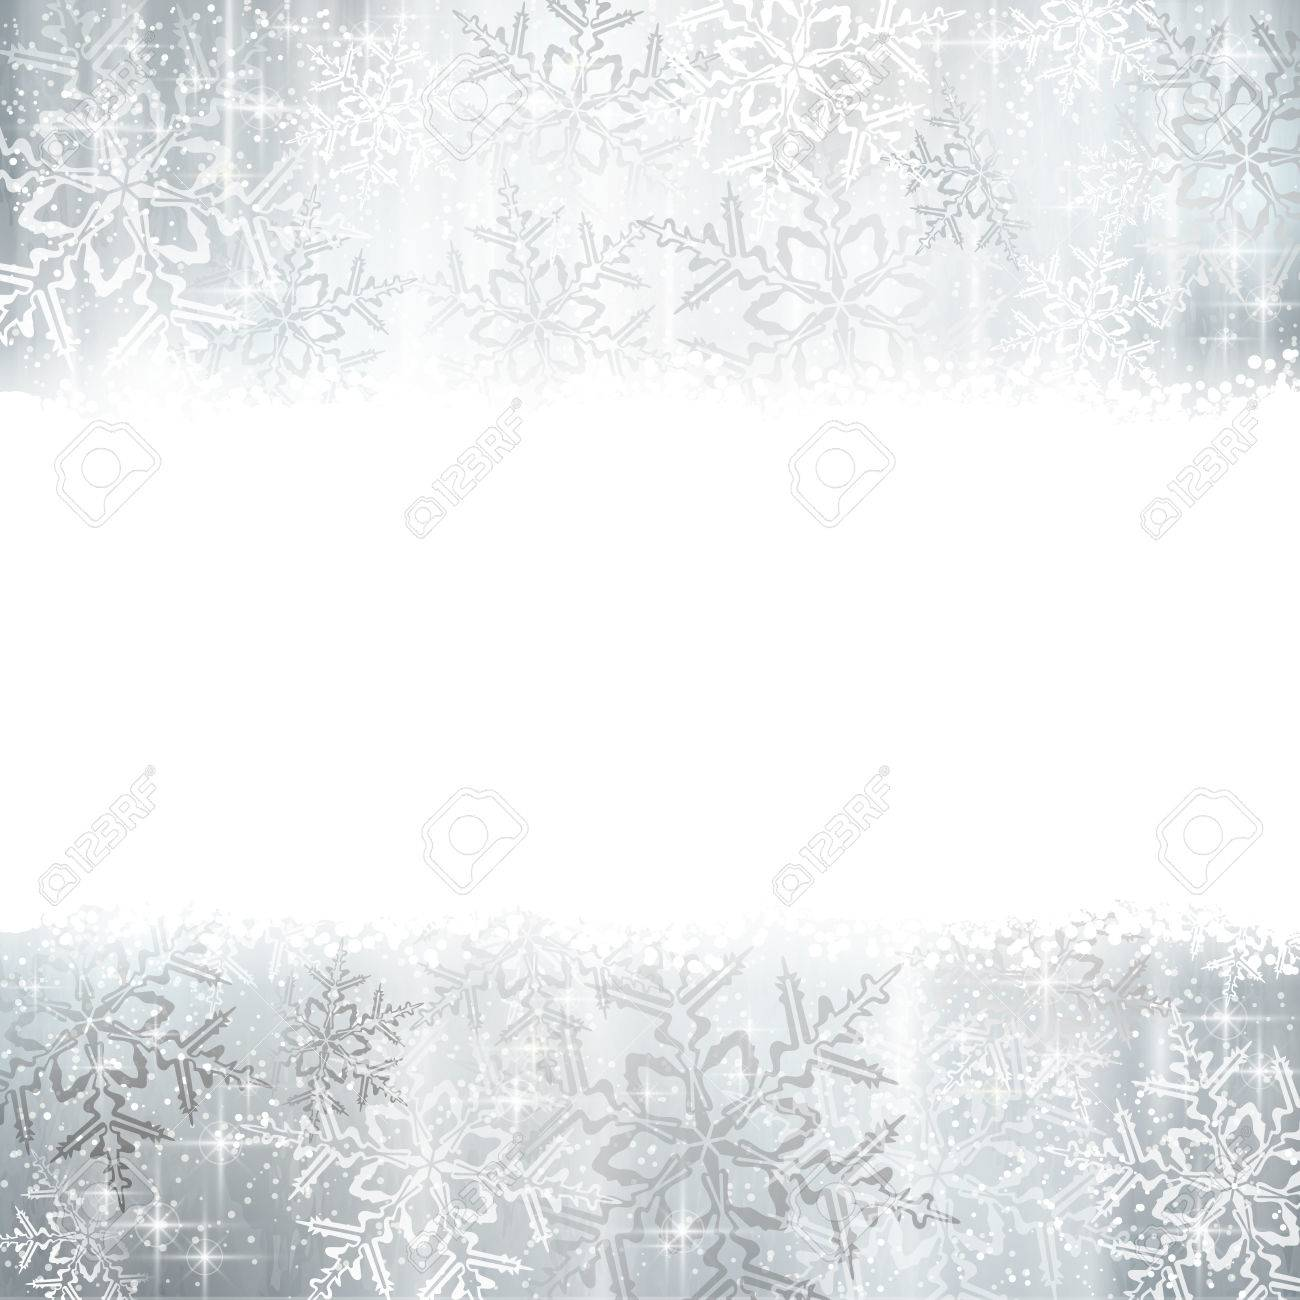 Silver and white snowflakes on a Christmas, winter card with copy space Stock Vector - 23848762